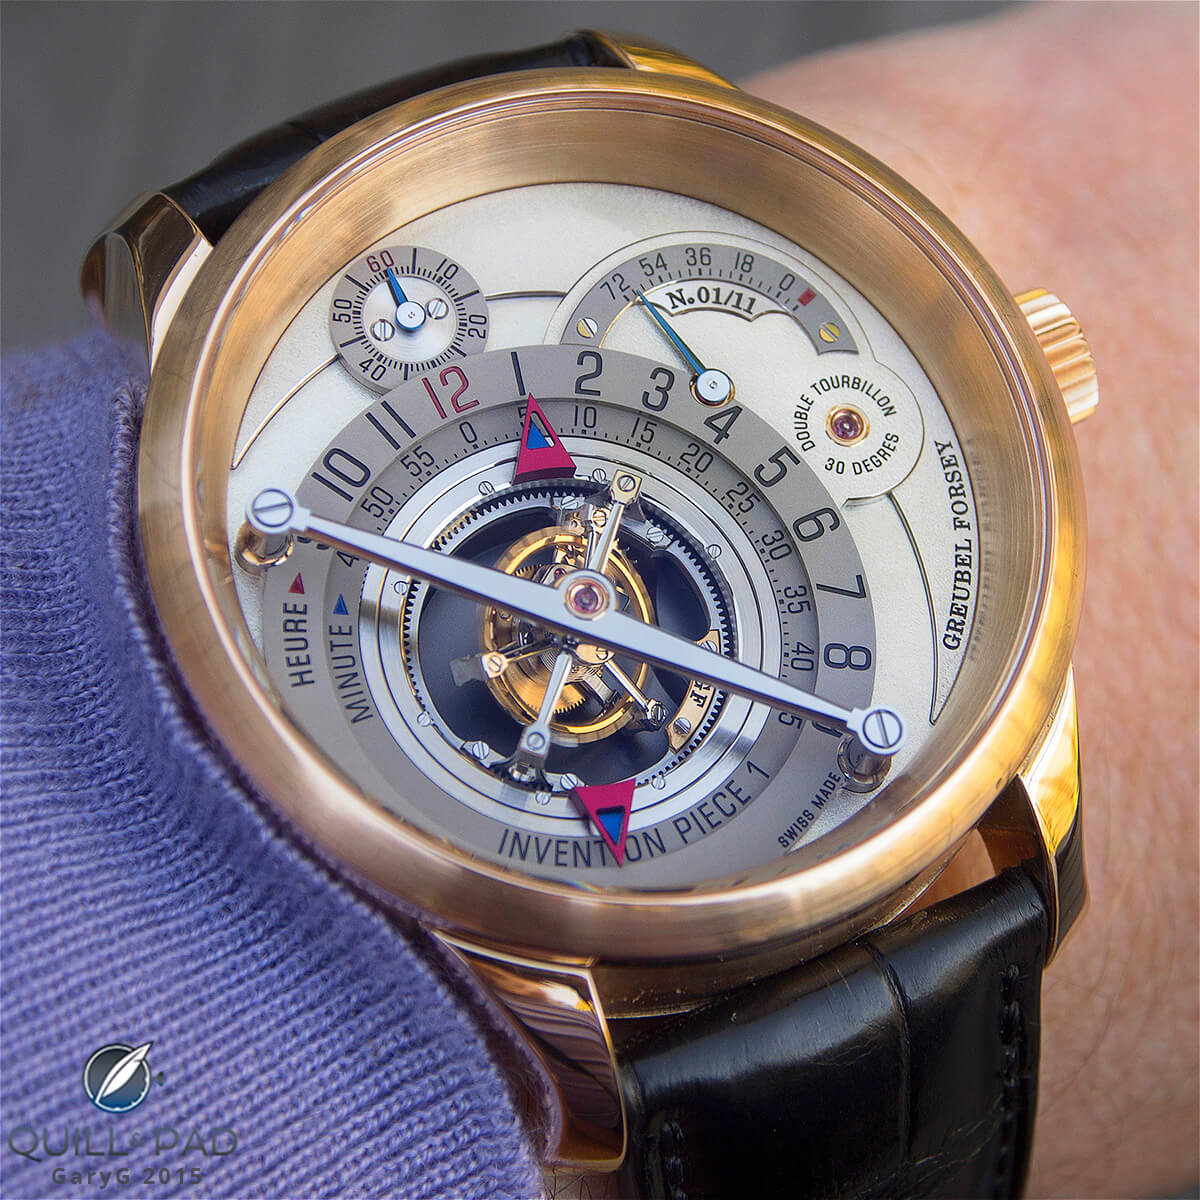 Worth the sacrifice: Greubel Forsey Invention Piece 1